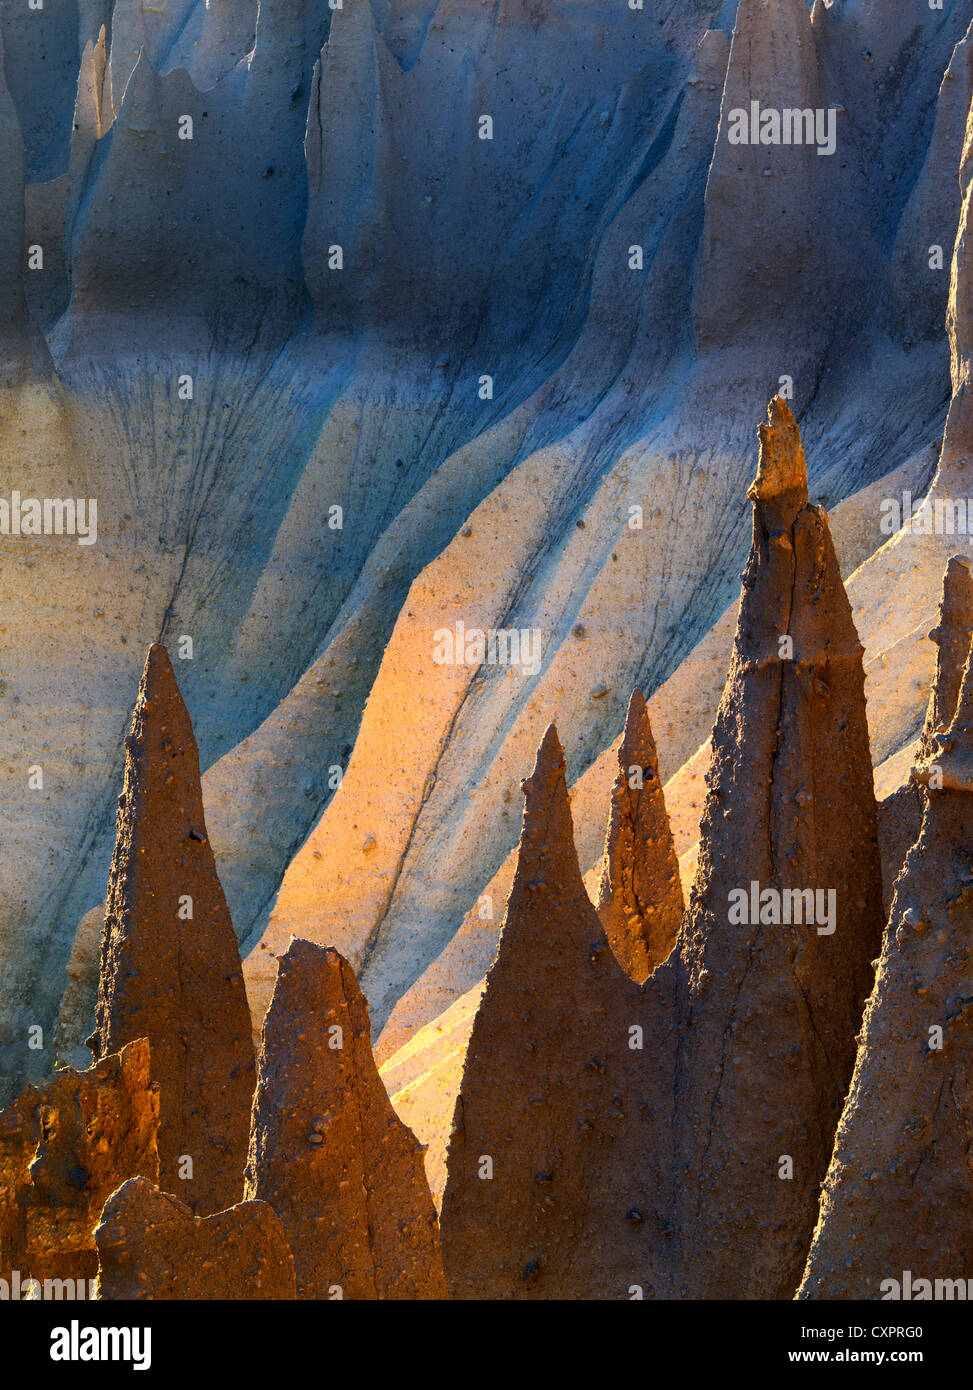 Backlit Pinnacles at Cater Lake National Park, Oregon, volcanic spires seen with first light - Stock Image